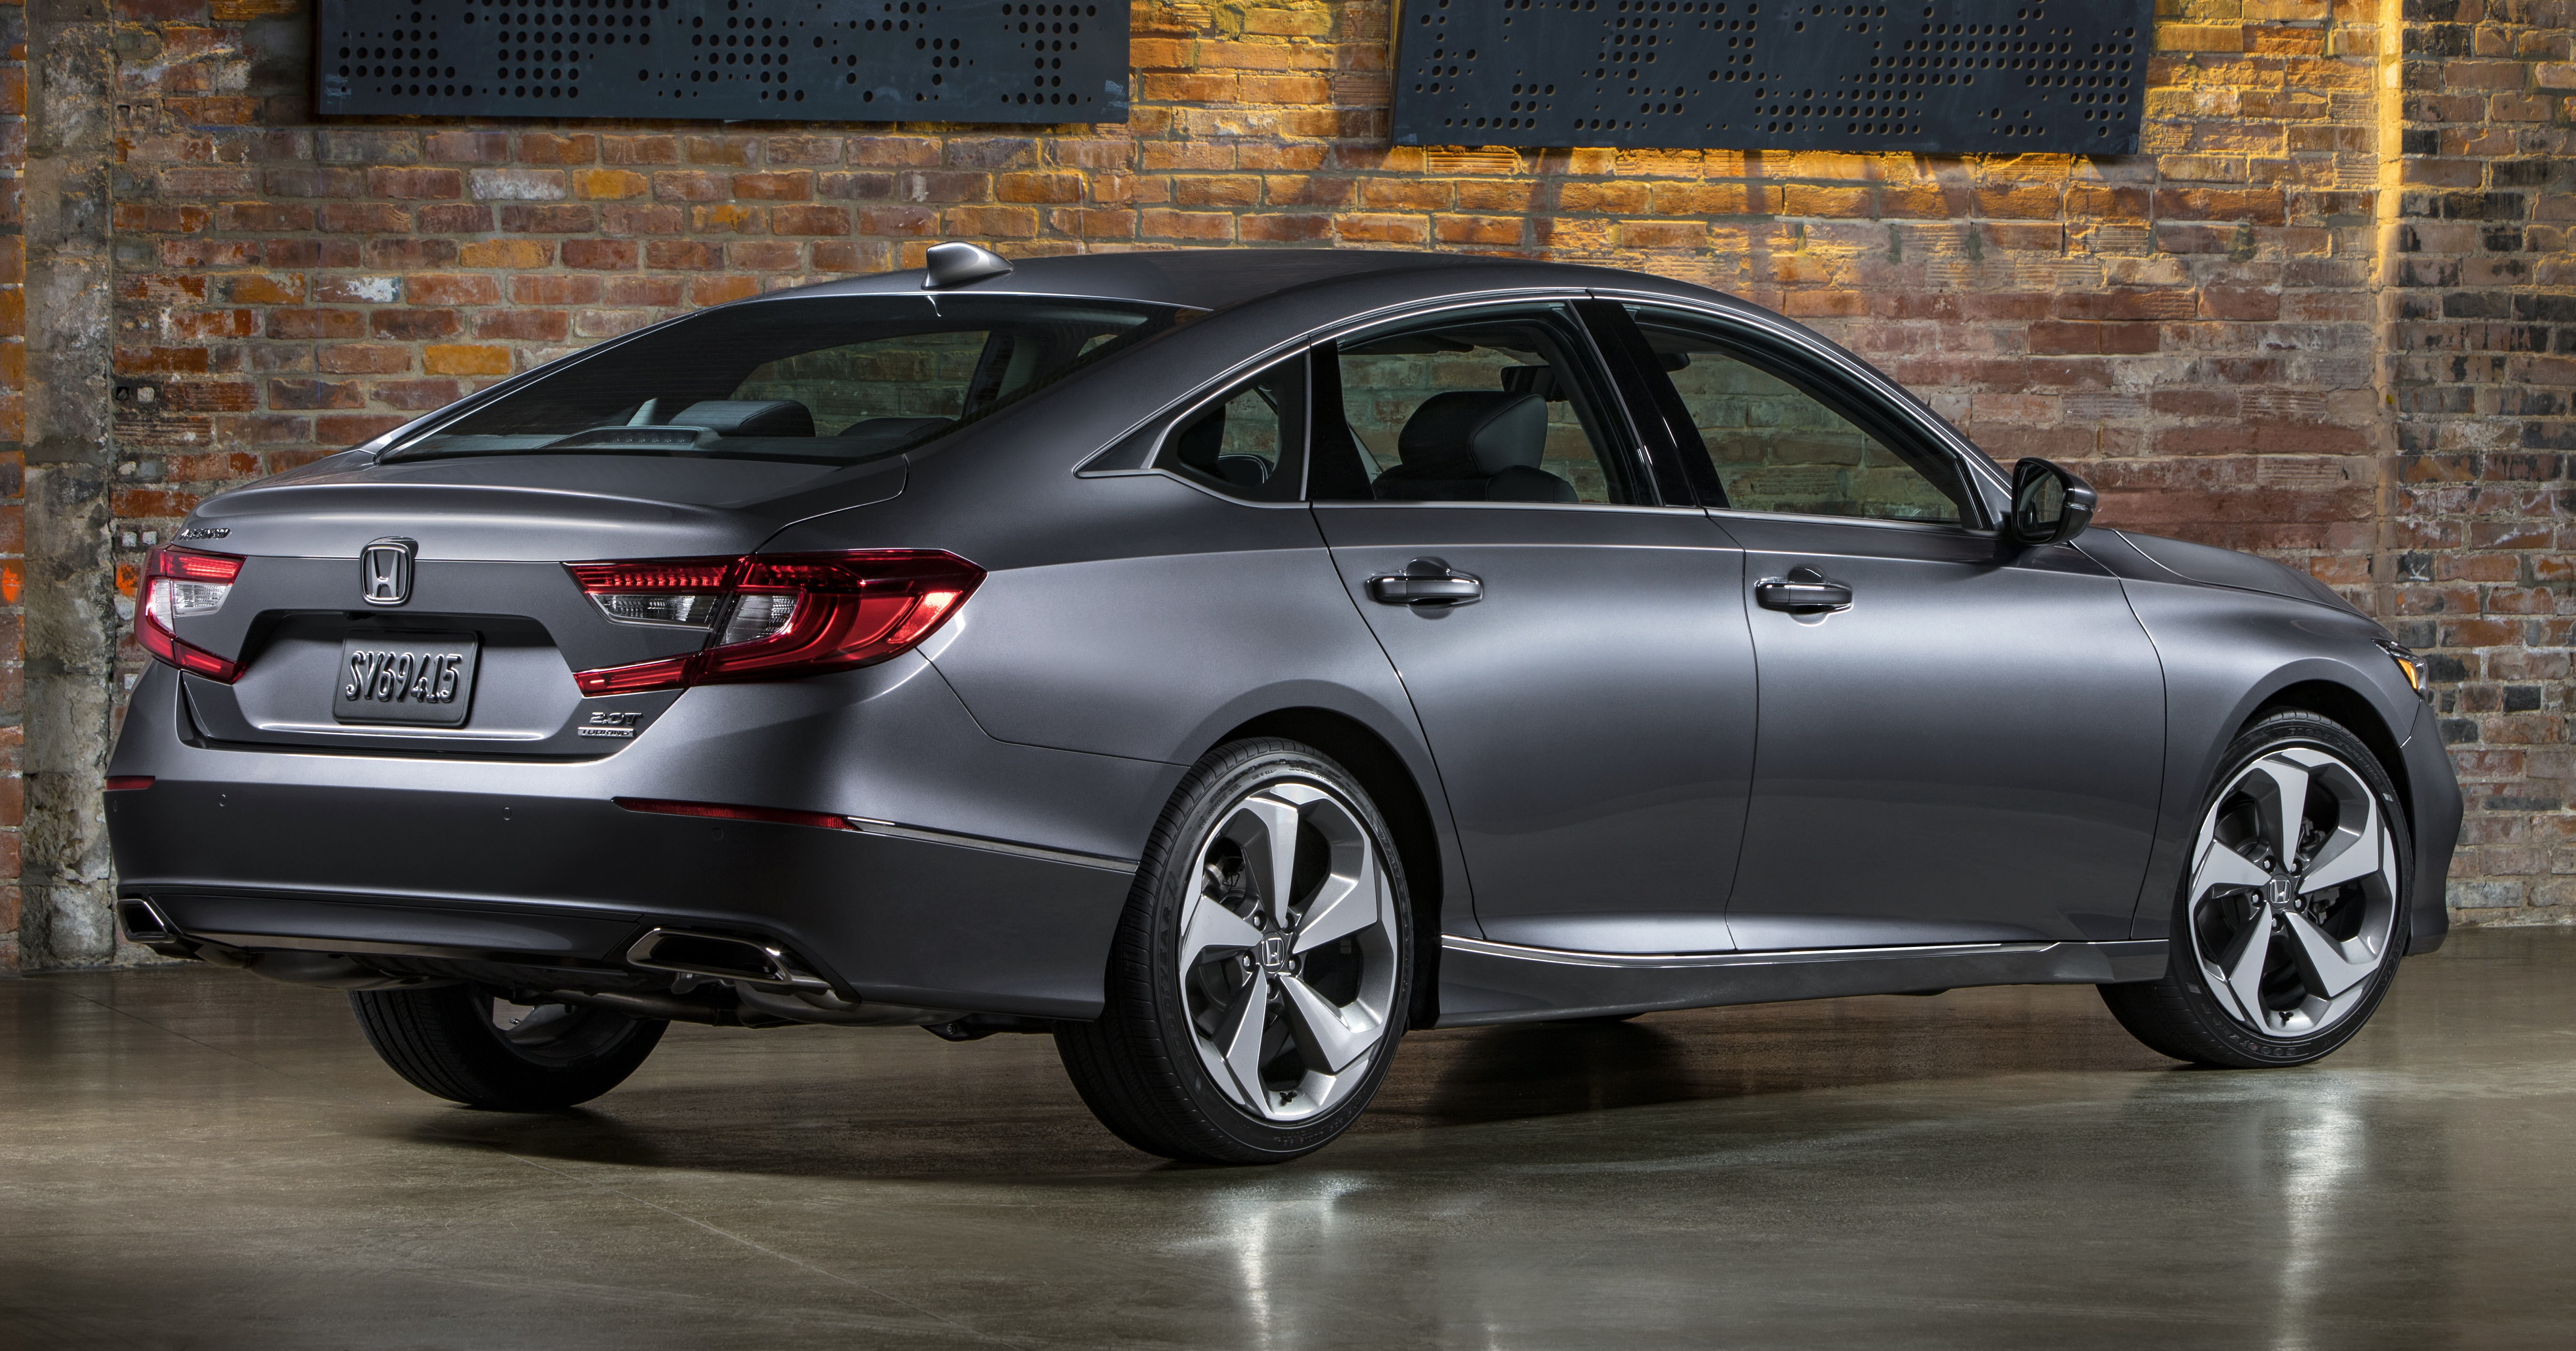 Wraparound Tail Lights With Led Light Guides And Integrated Twin Exhaust Exits Honda Claims That The Overall Aerodynamic Efficiency Of New Accord